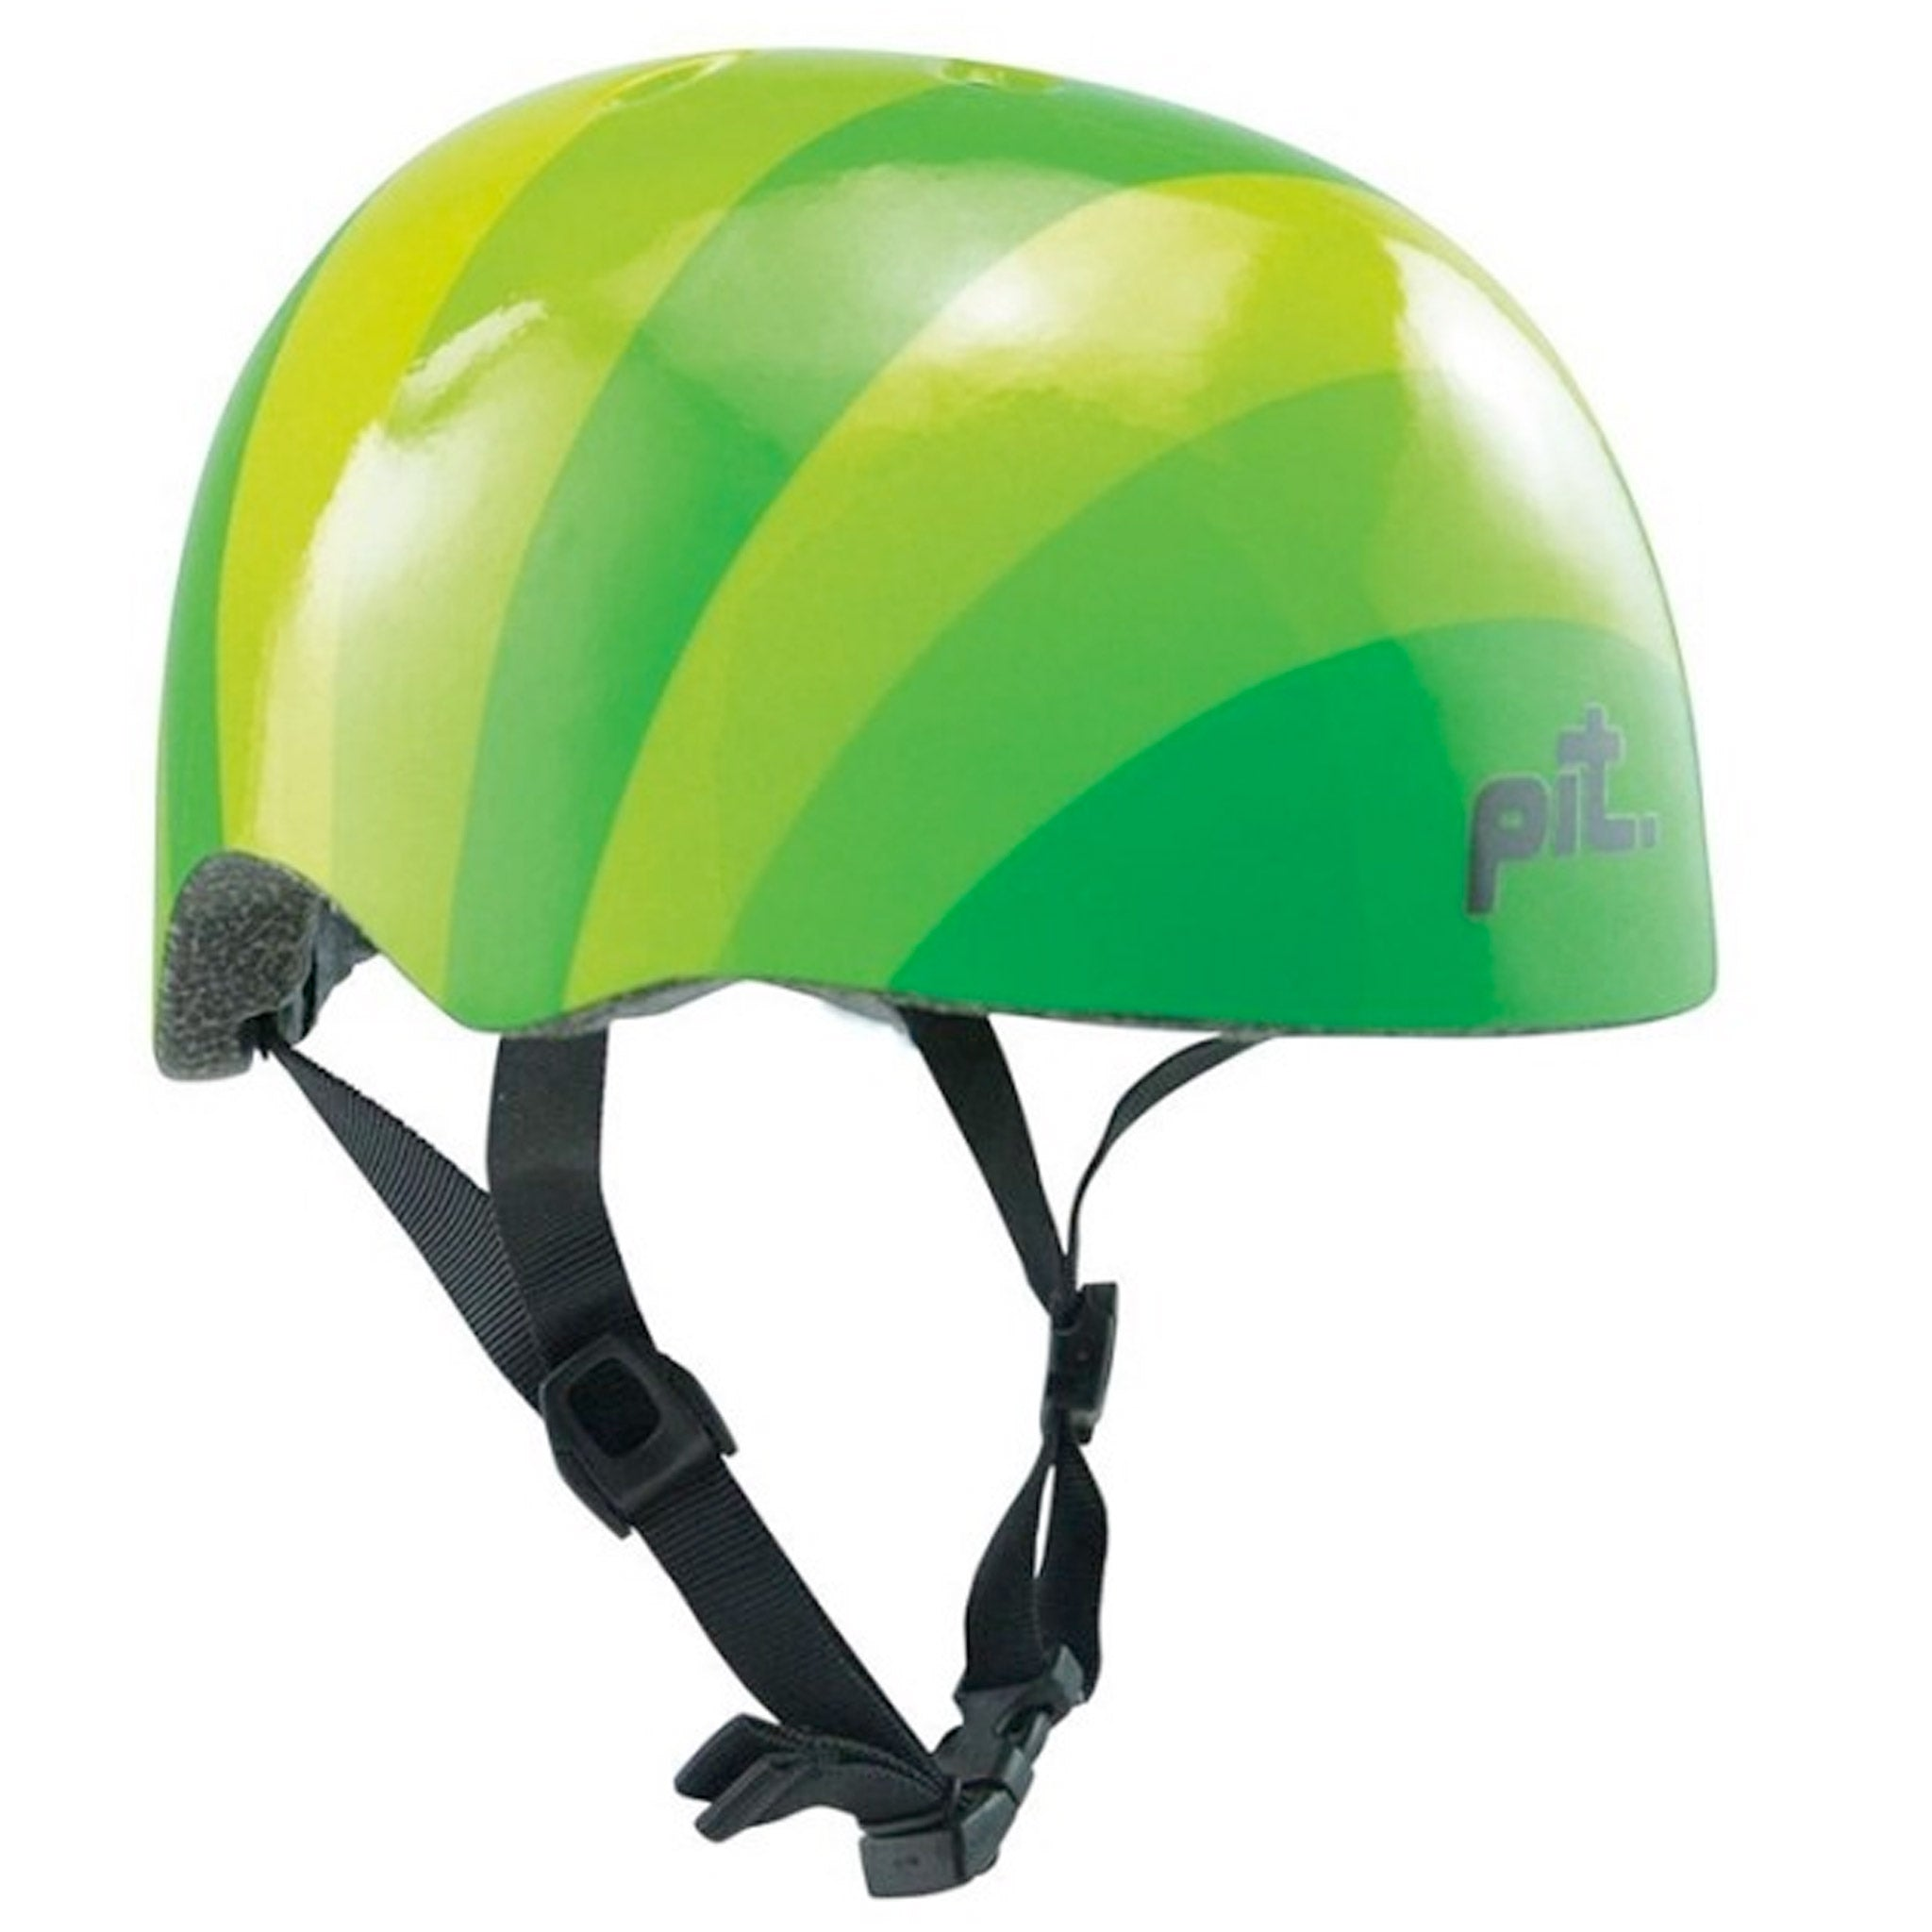 The Pit Kids Bike and Skate Helmet, Green, X-Small buy online at Woolys Wheels